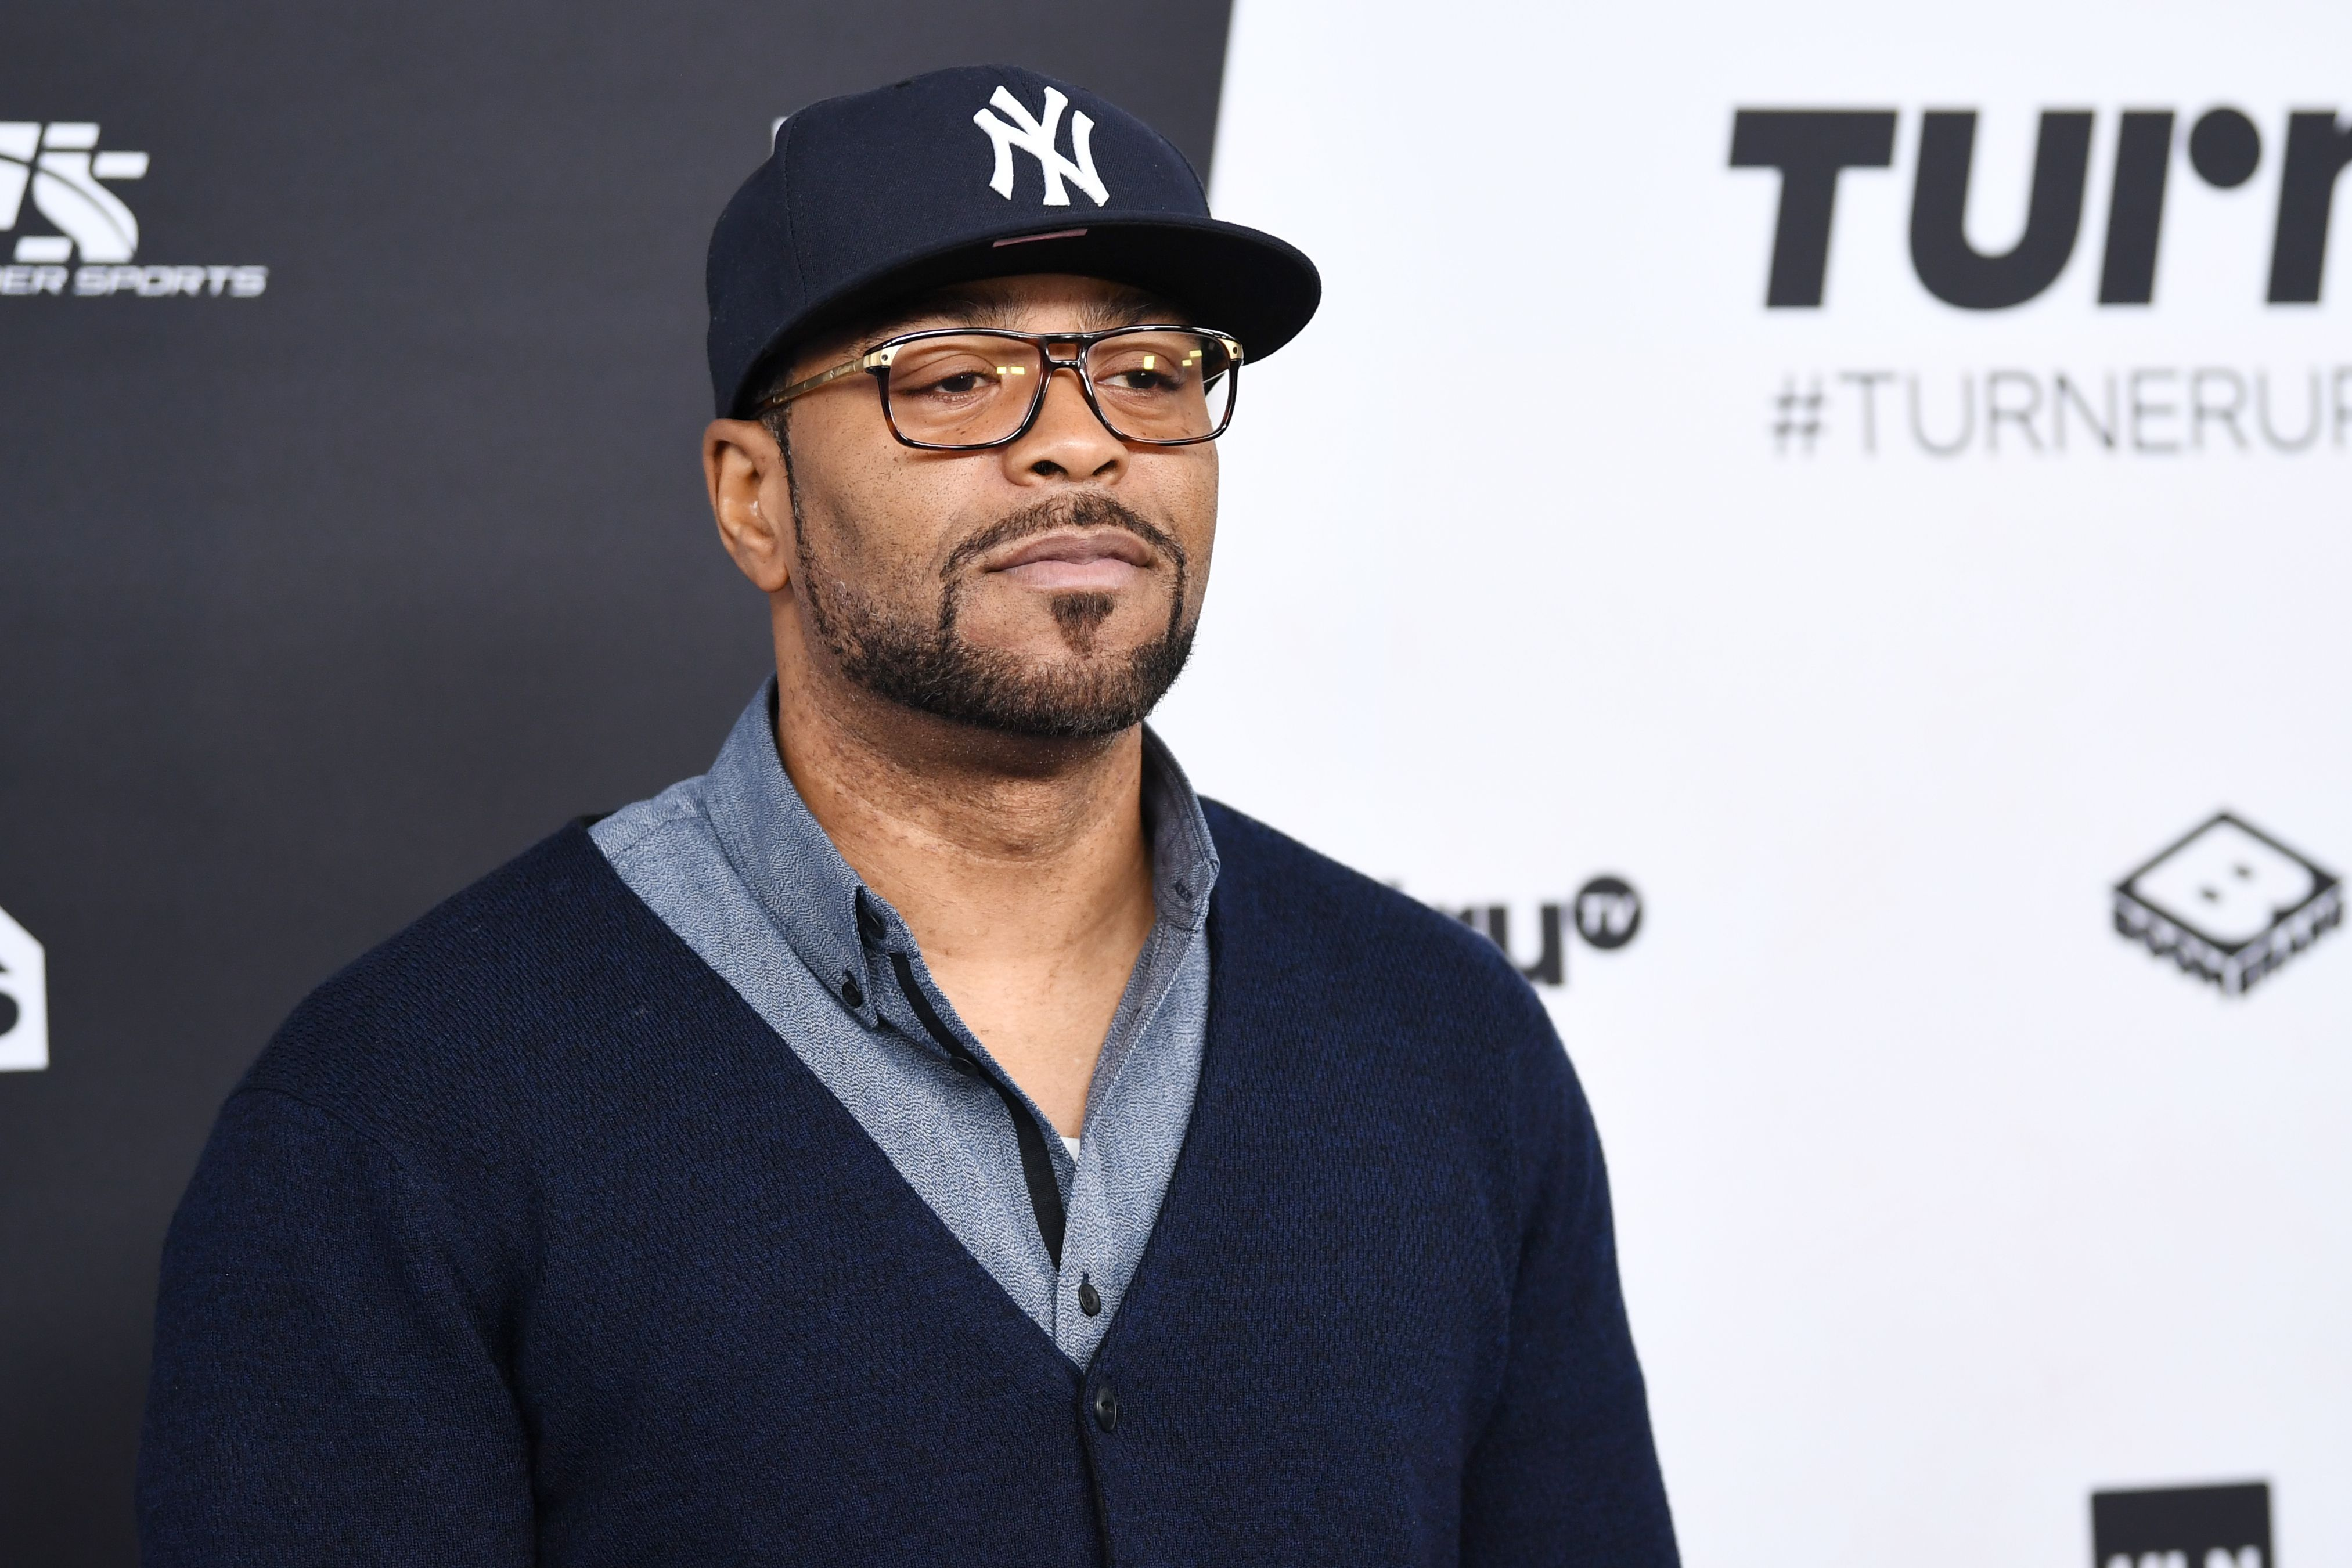 Method Man at the Turner Upfront 2018 red carpet in 2018 in New York City | Source: Getty Images